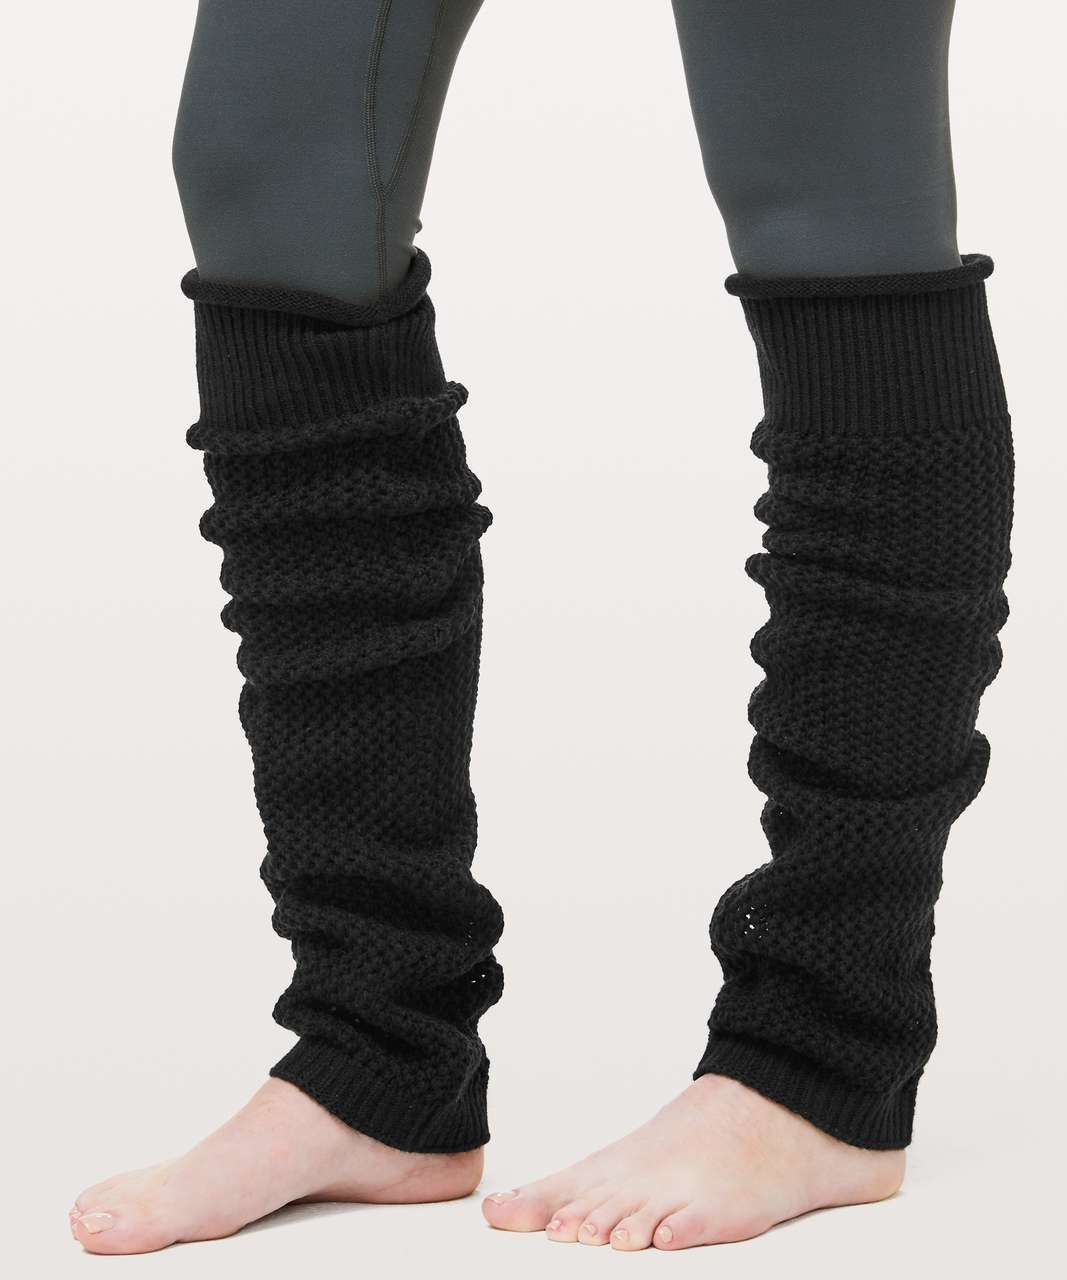 Lululemon Falling Freely Leg Warmer - Black